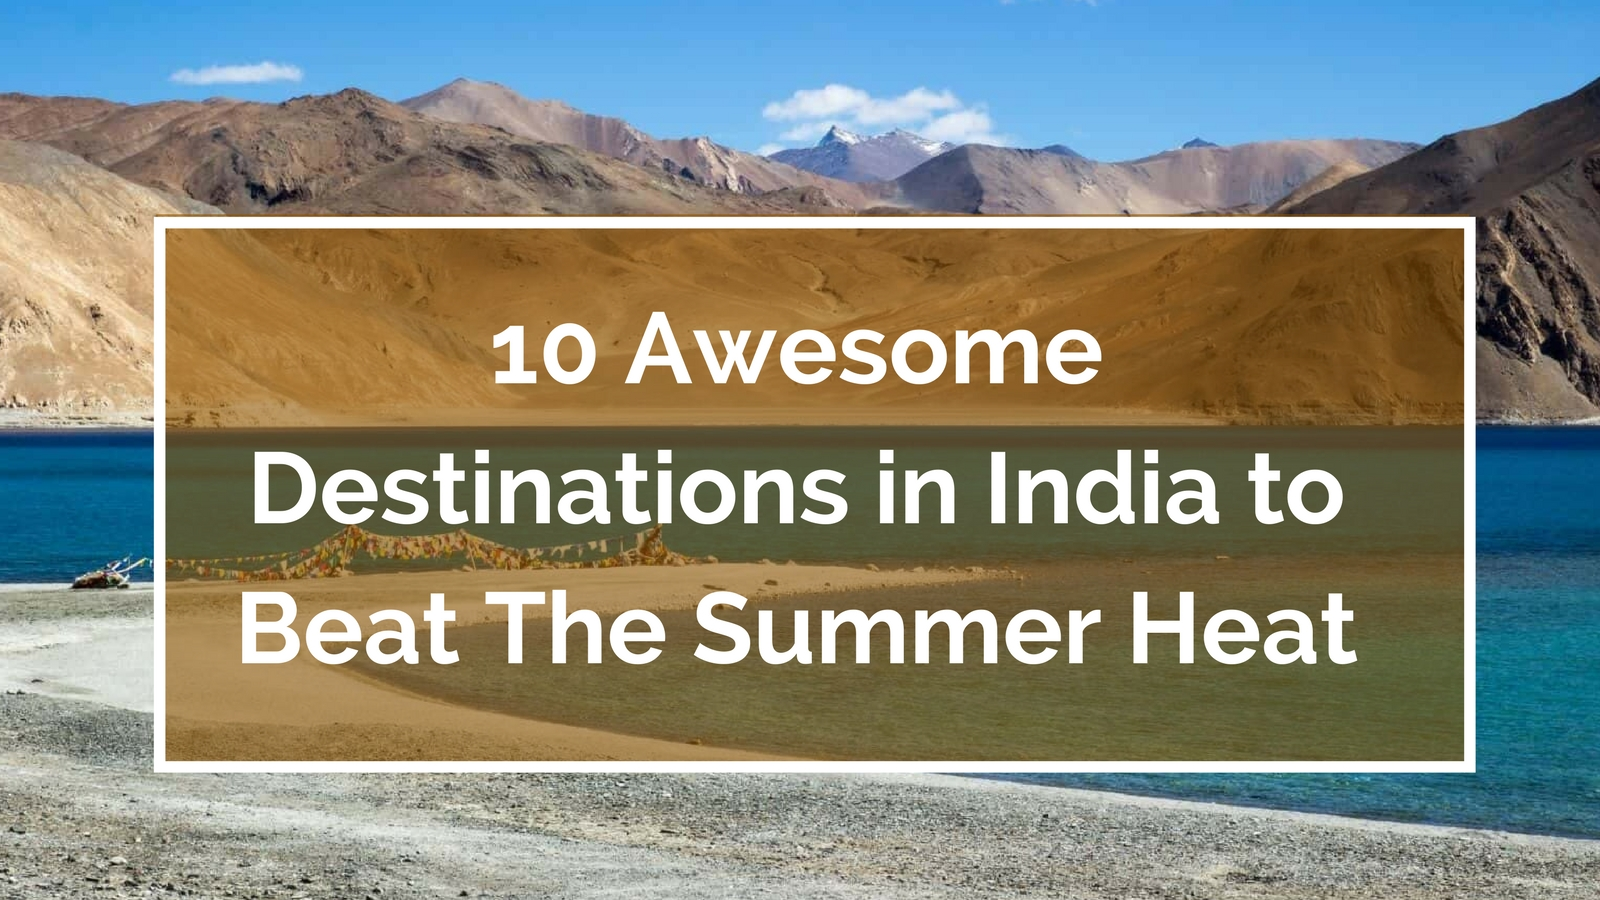 10 Awesome Destinations in India to Beat The Summer Heat